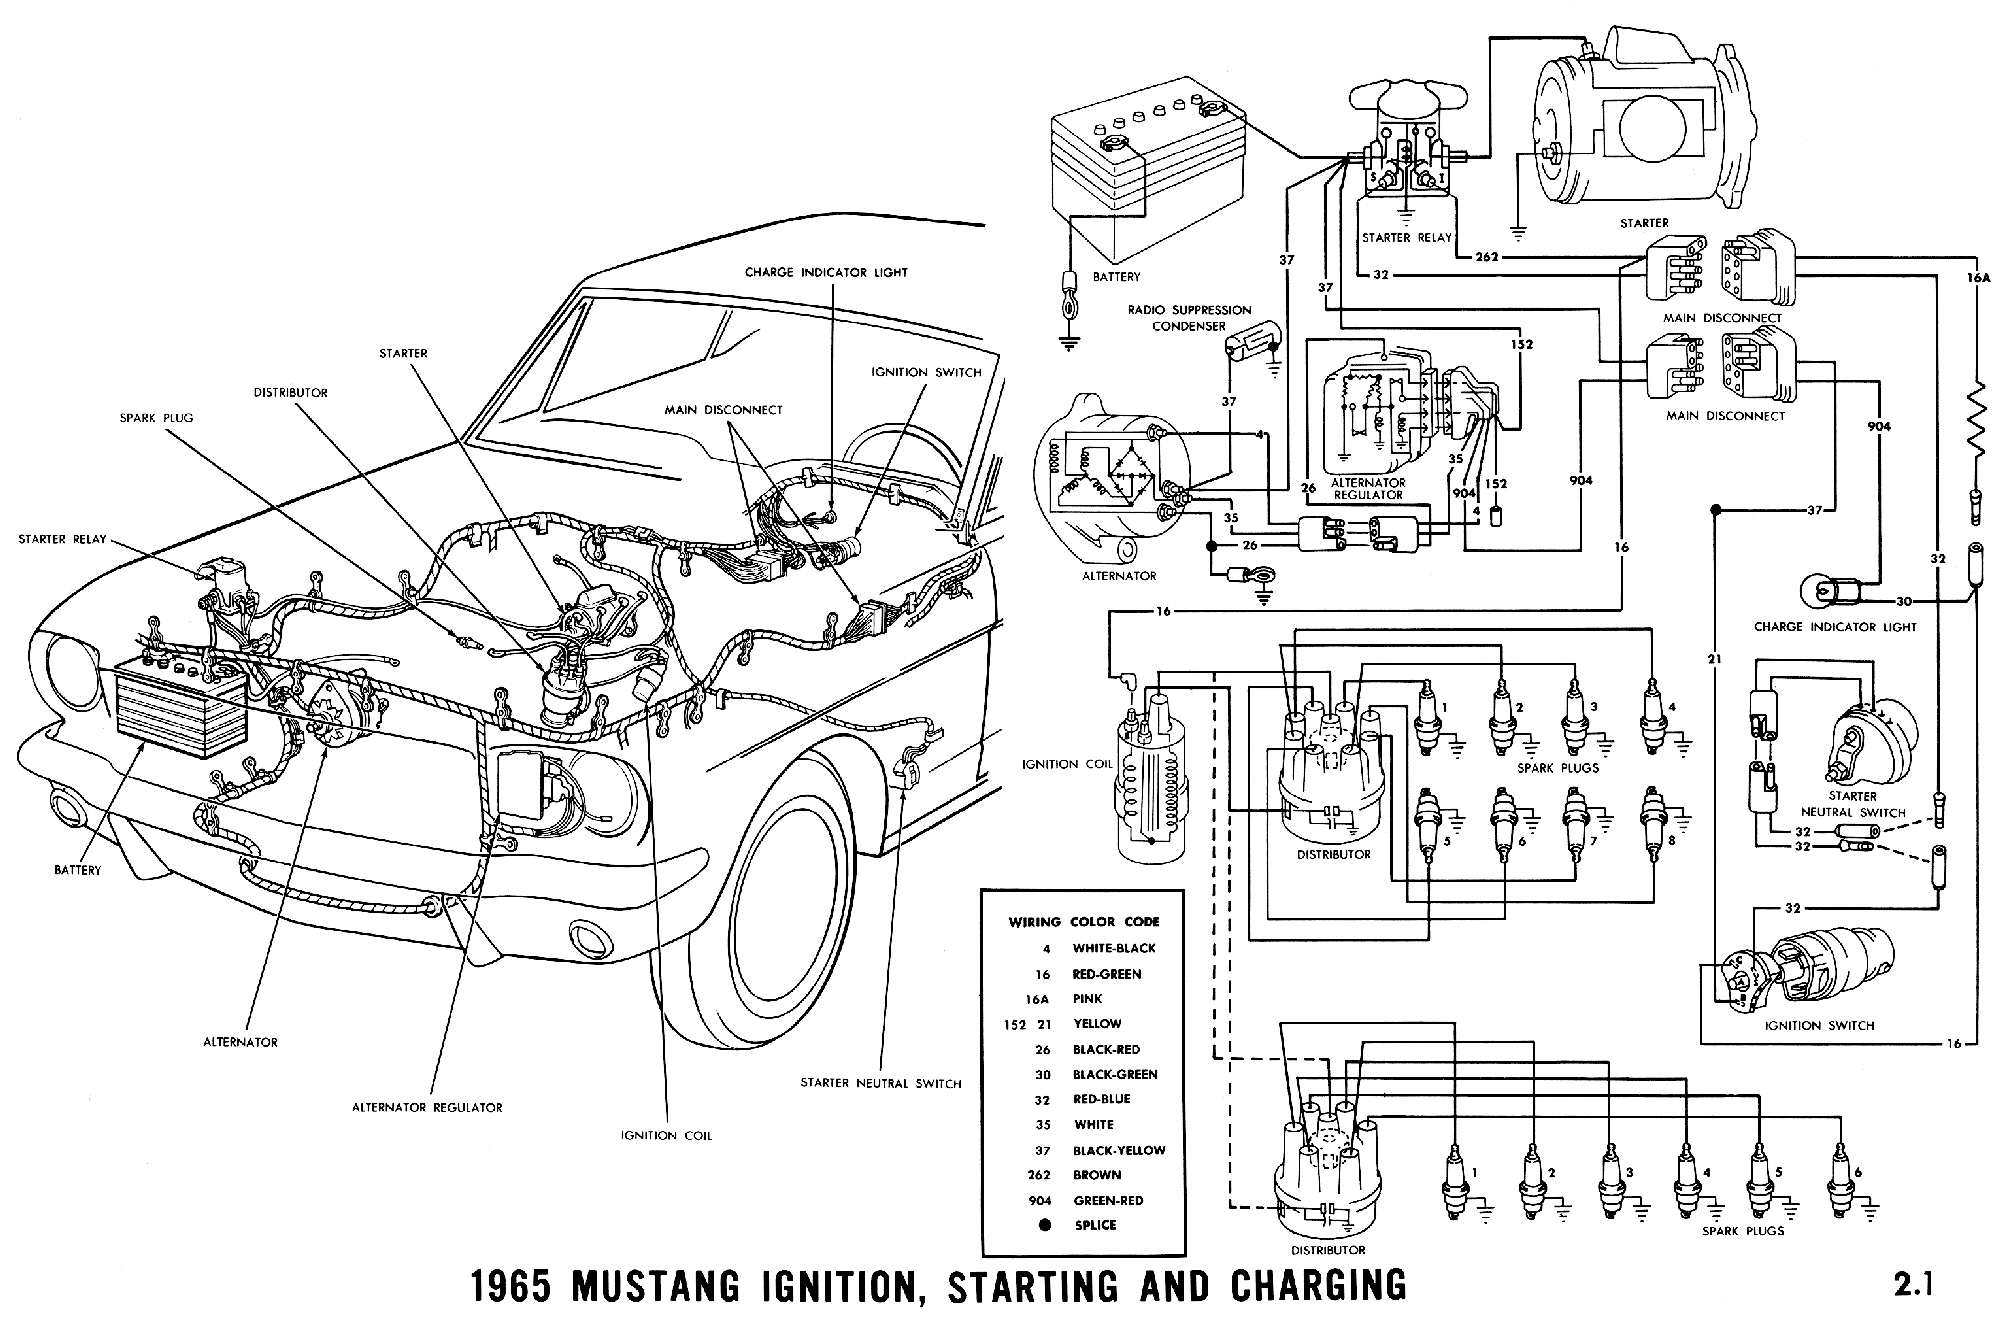 hight resolution of 1965 mustang wiring diagrams average joe restoration 1965 mustang radio wiring diagram 1965 mustang ignition wiring diagram